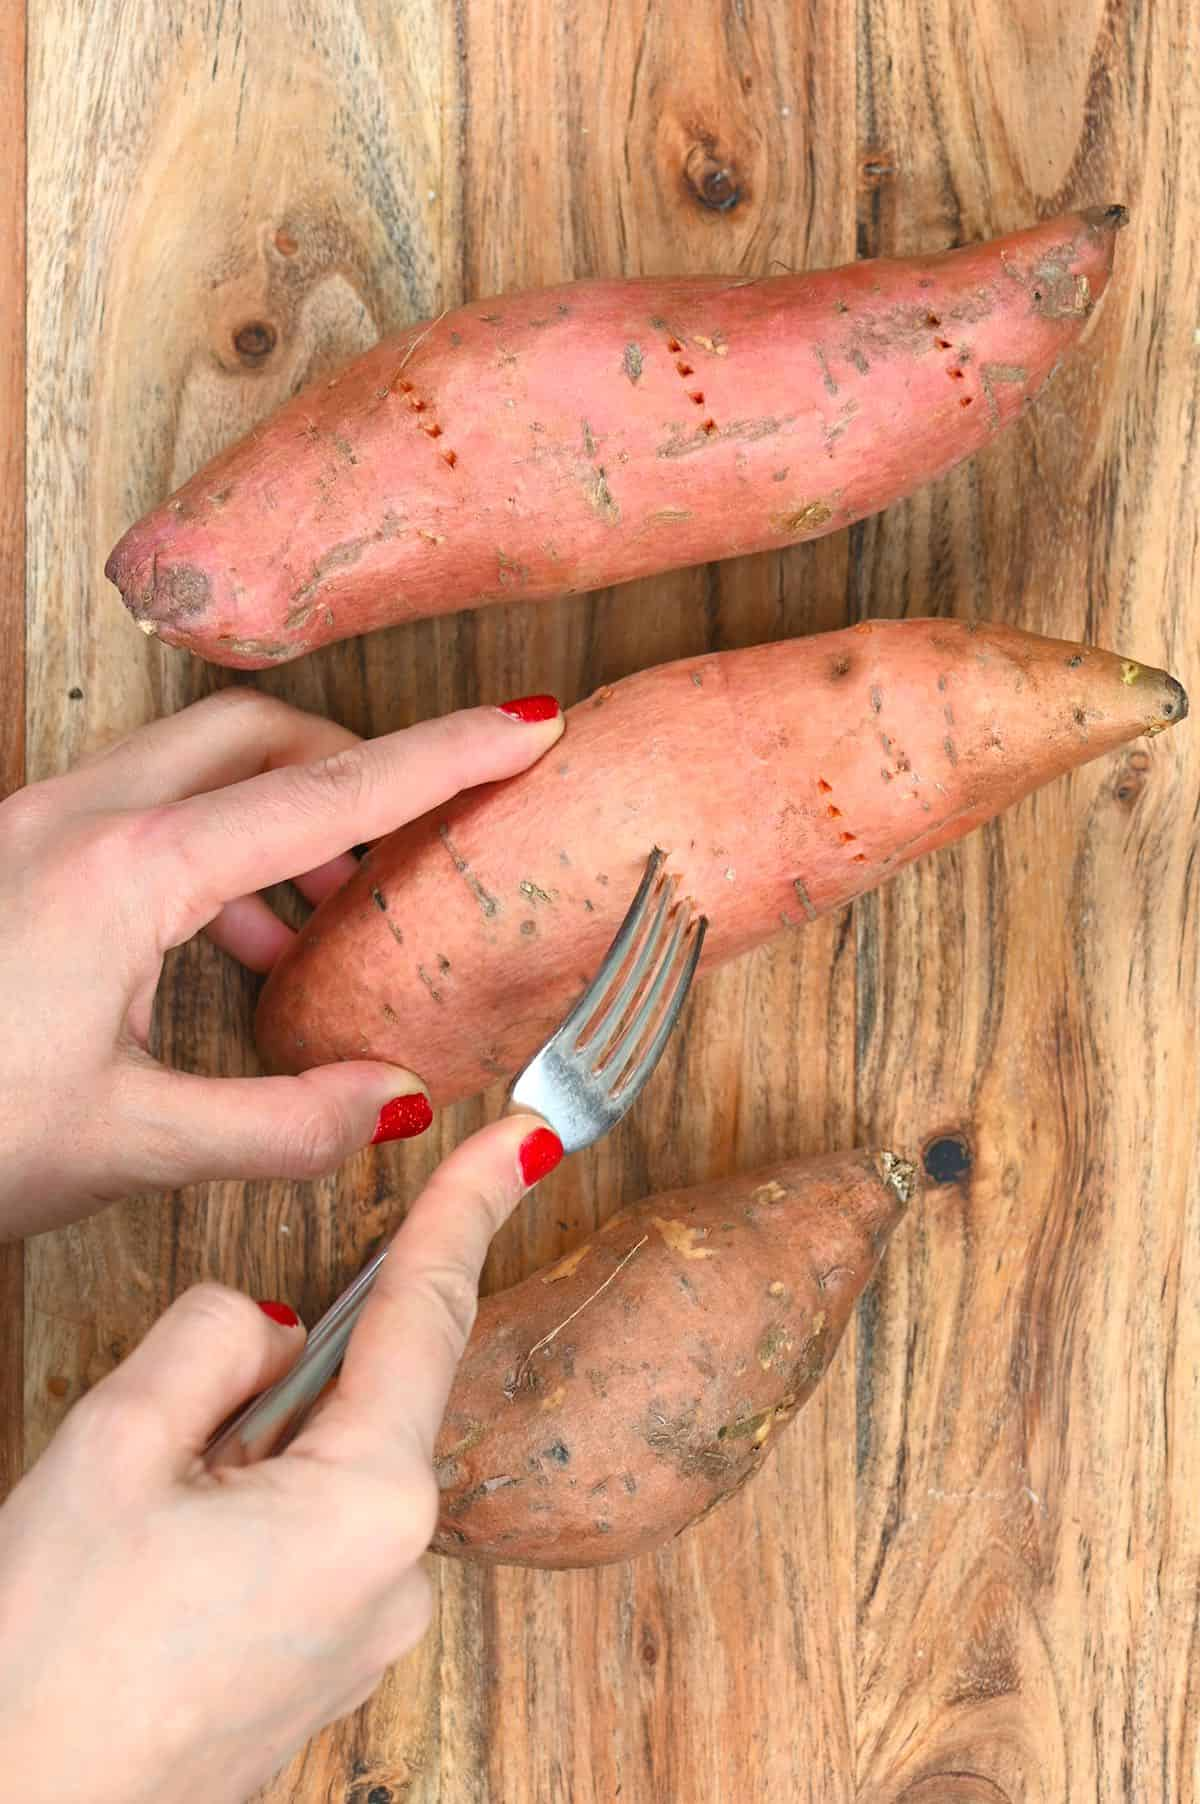 Poking sweet potatoes with a fork